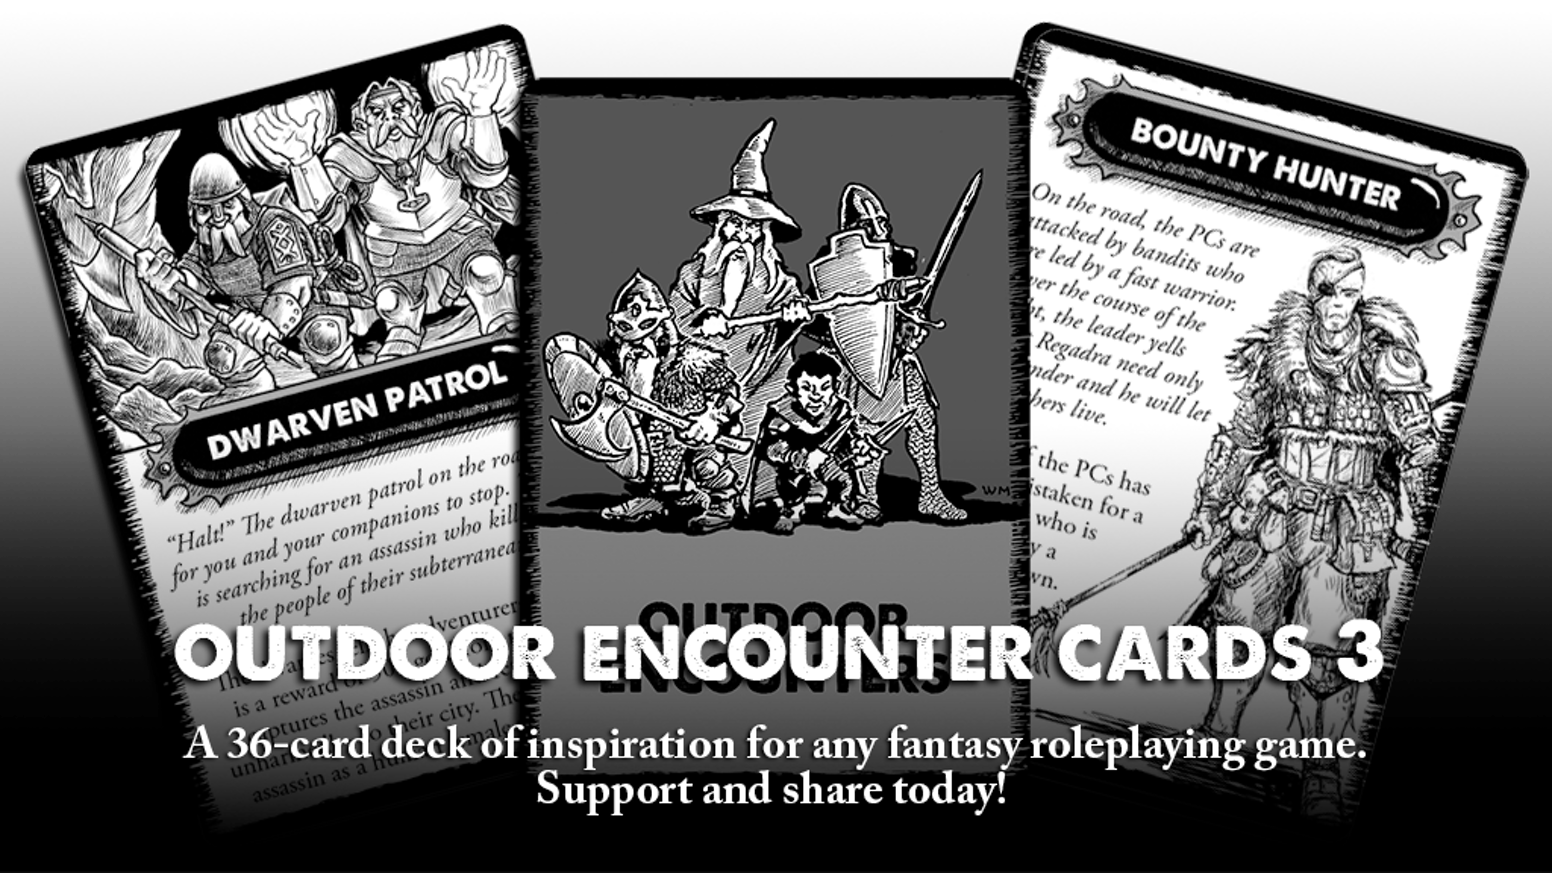 A new deck of cards used to randomly generate outdoor encounters. More inspiration than mechanics.